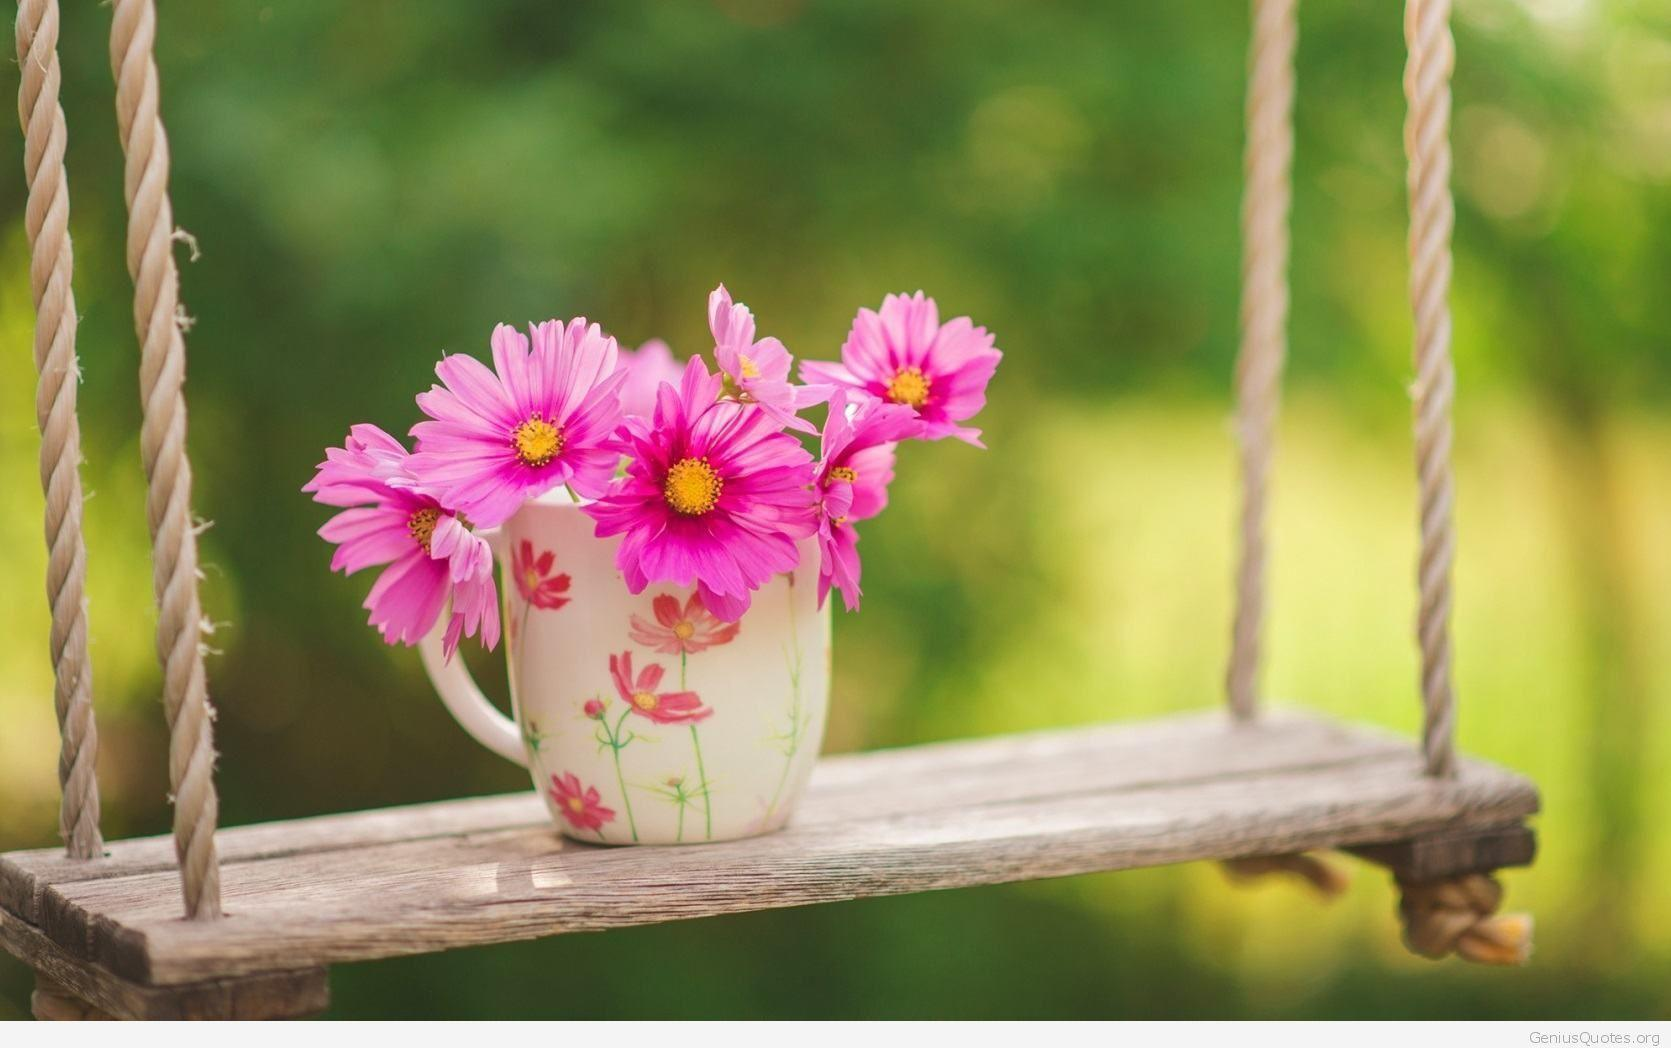 Awesome Pics | Spring Flowers HD Widescreen Wallpapers (43+)